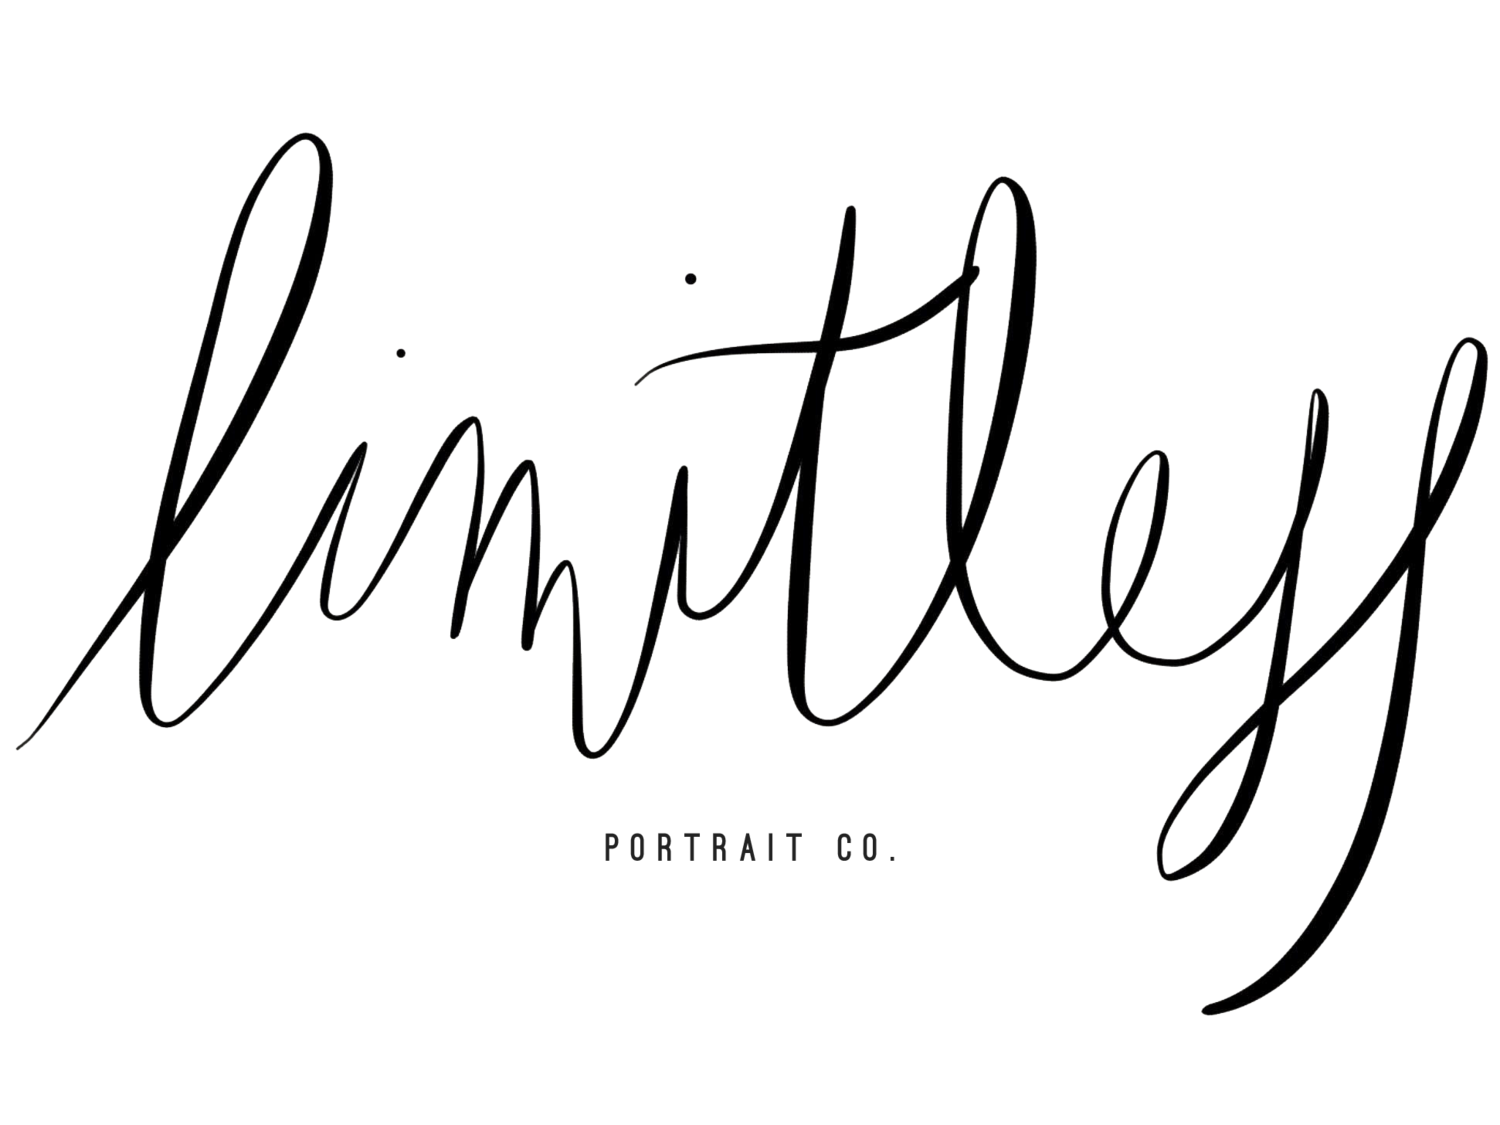 Limitless Portrait Co.